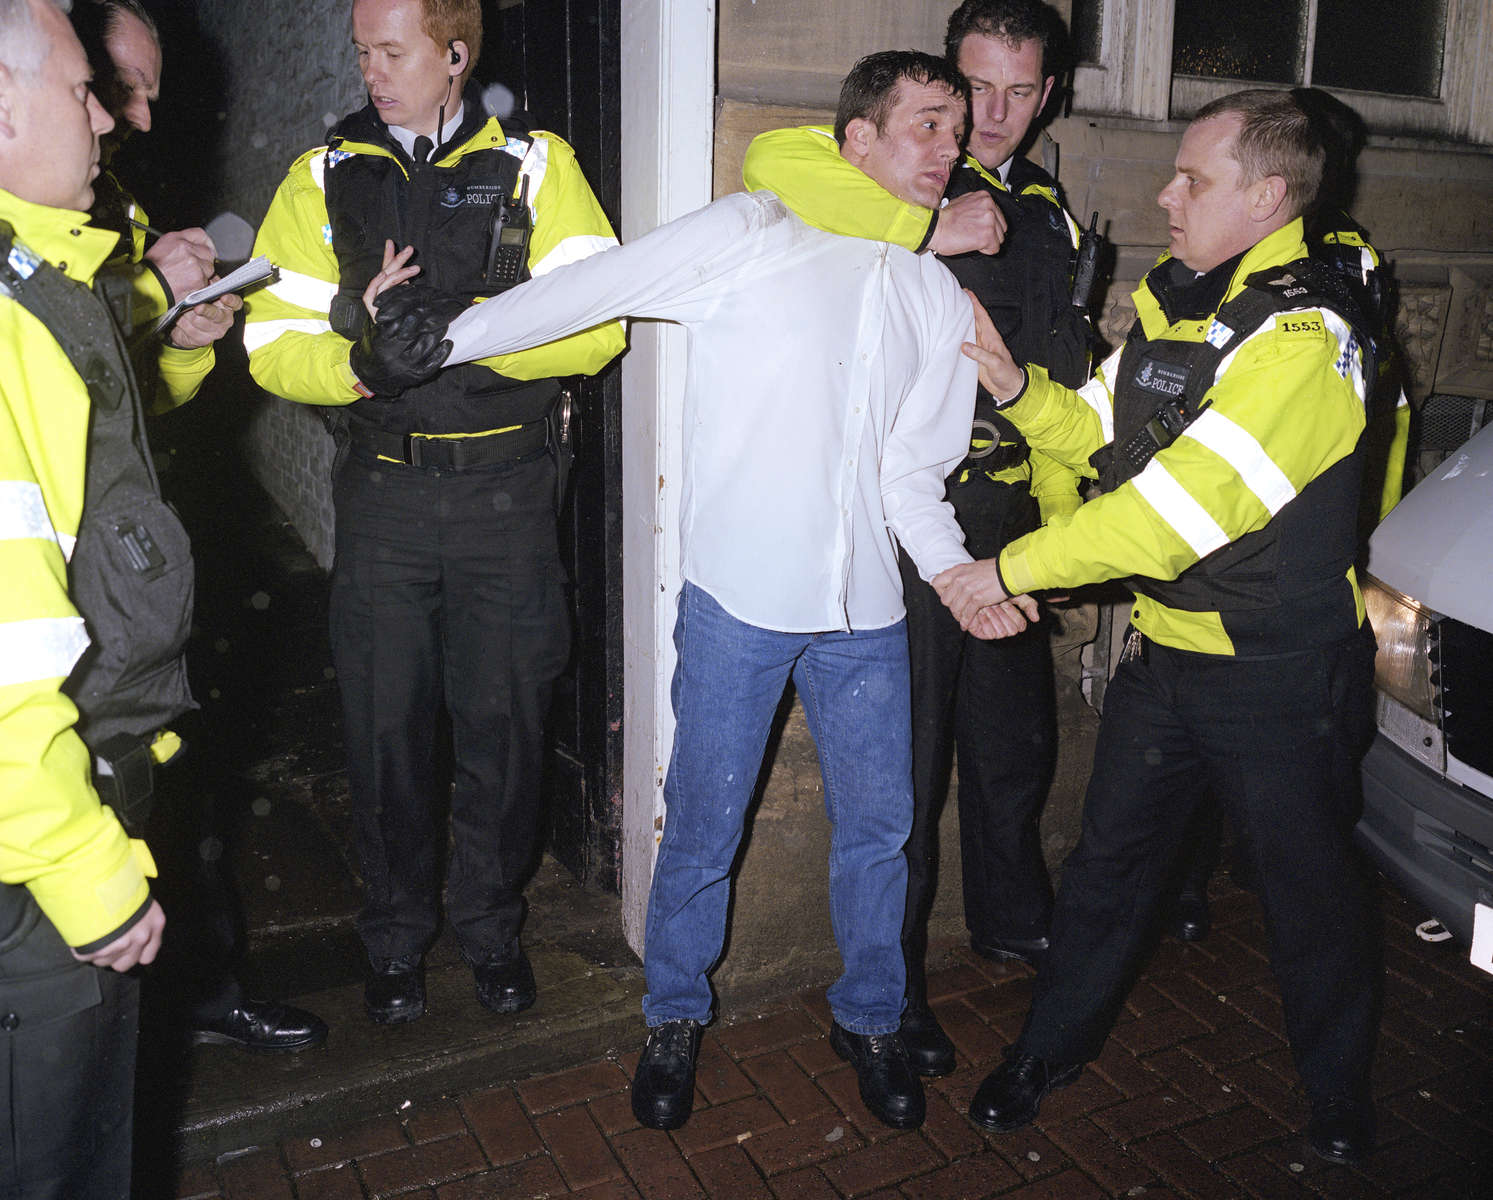 Humberside Police officers restrain a man suspected of causing a public order offence while under the influence of alcohol. April 2004